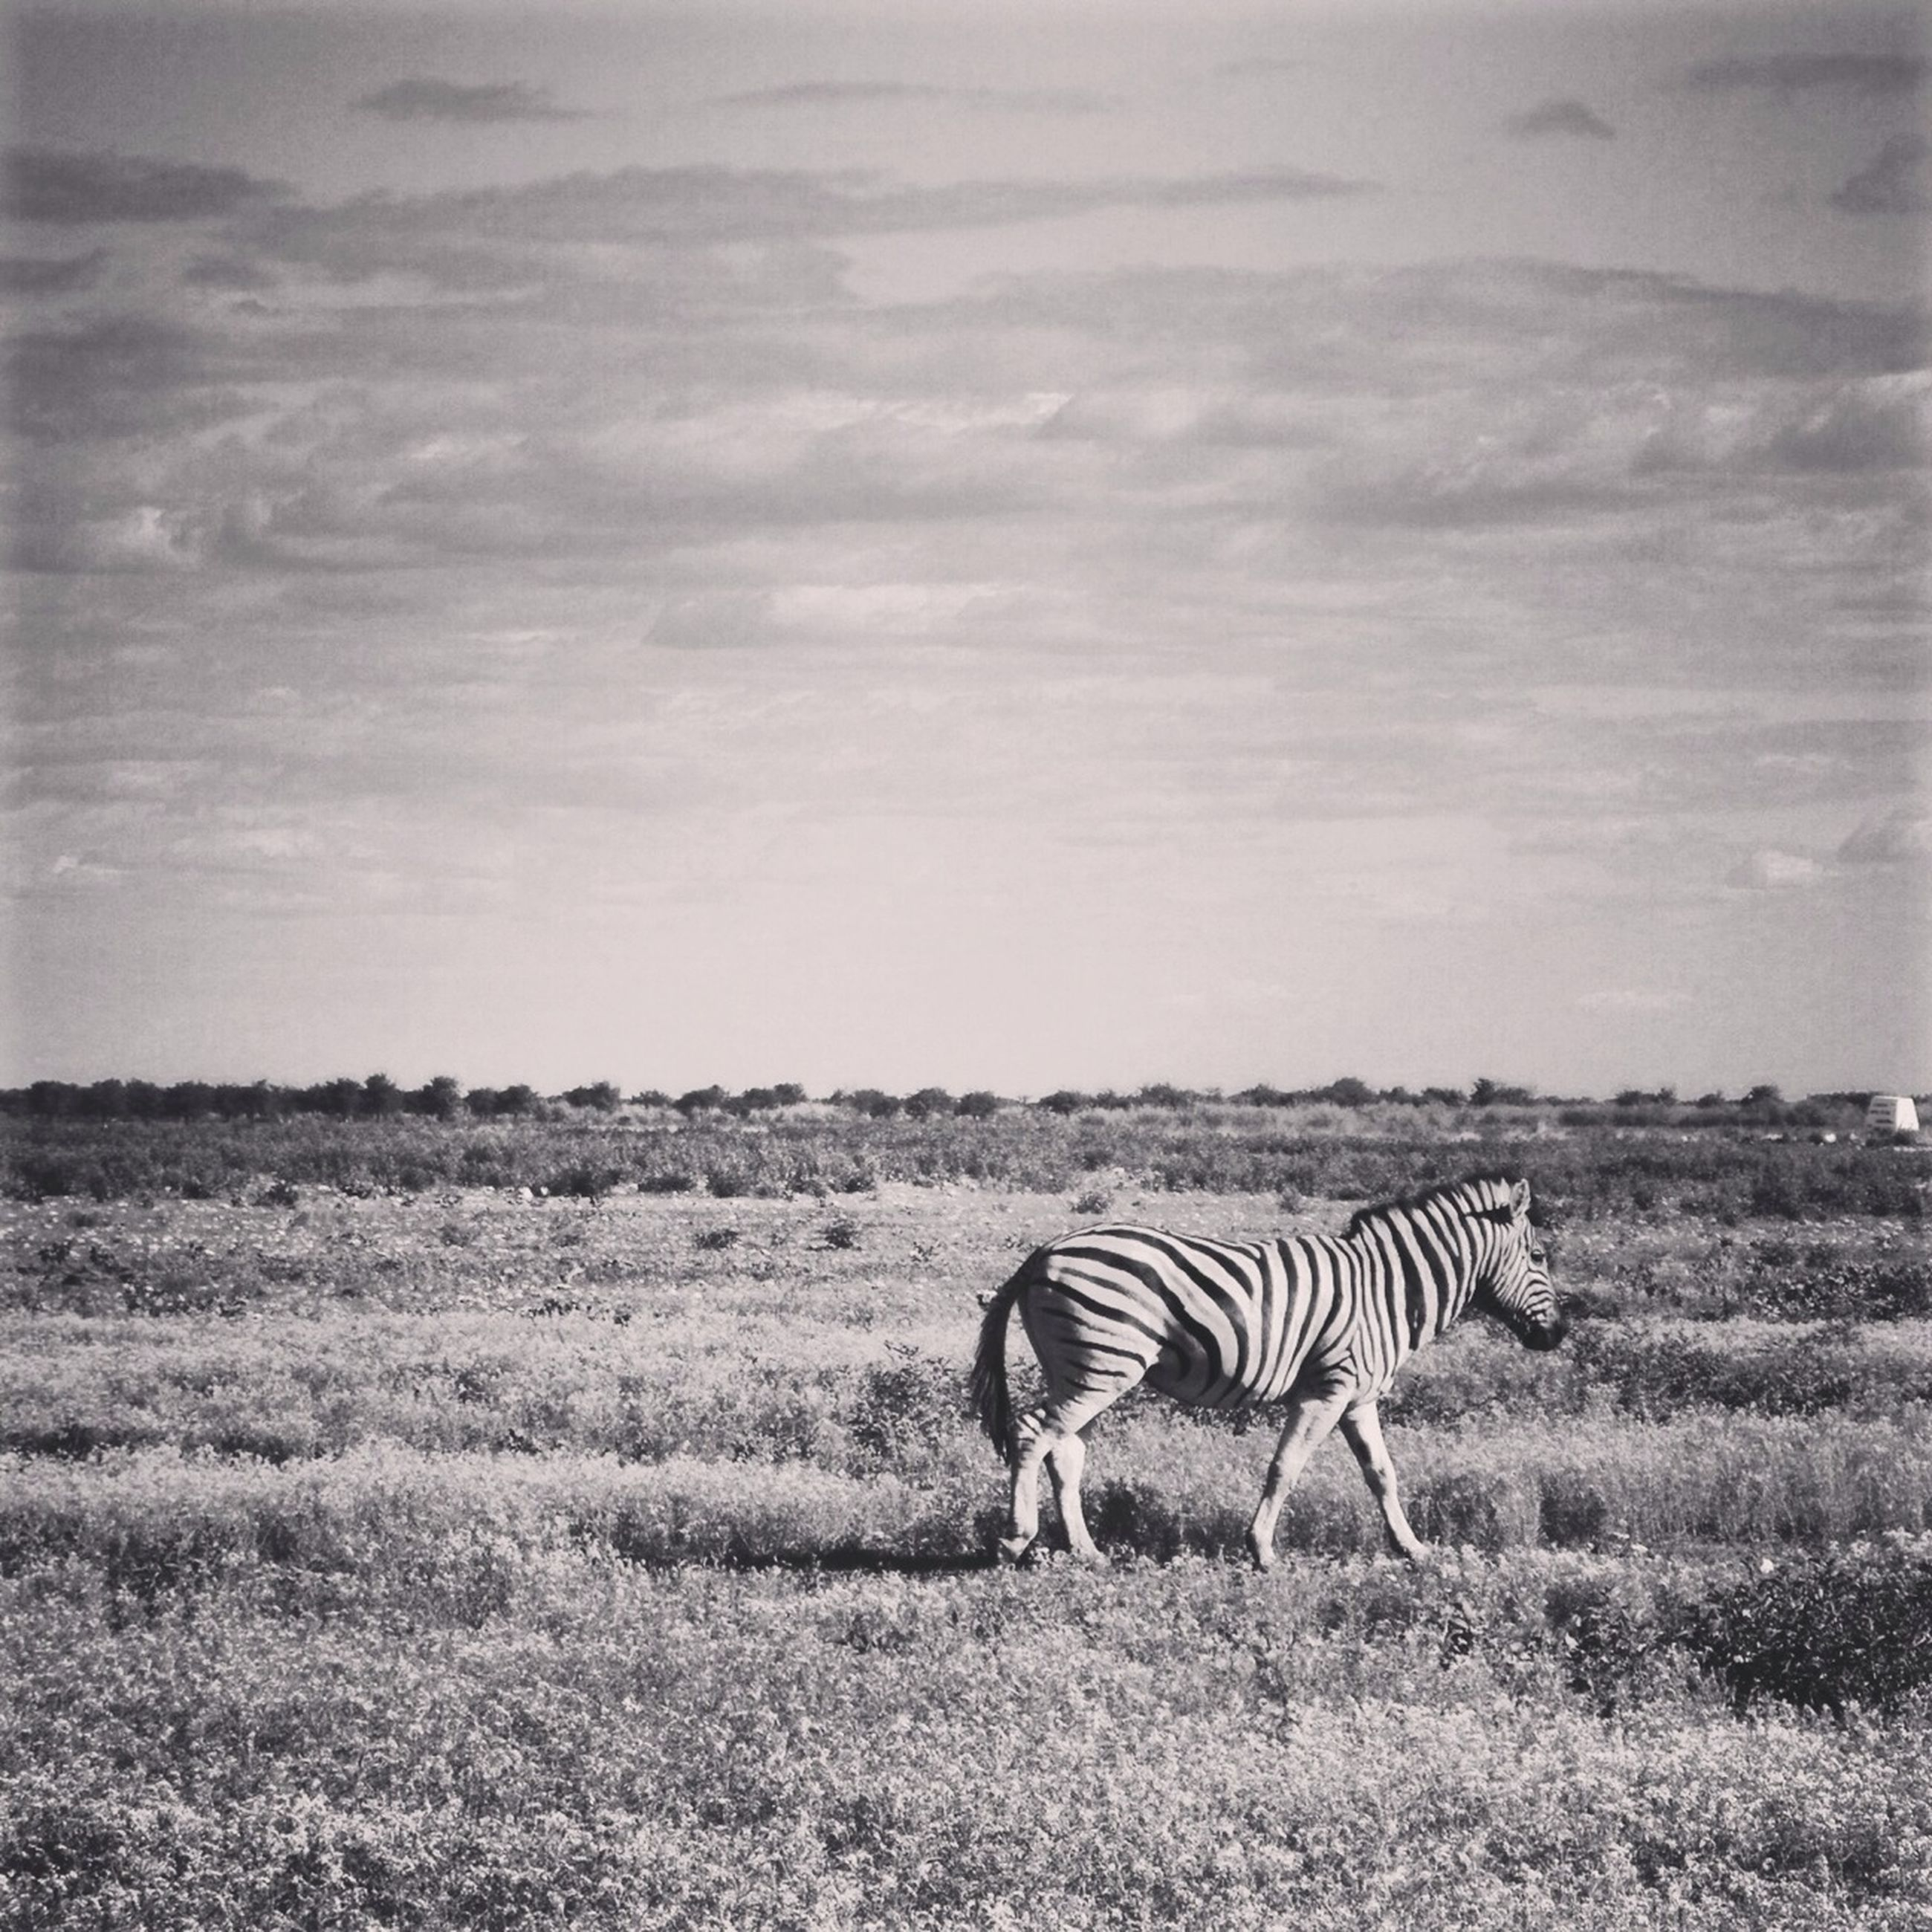 animal themes, animals in the wild, wildlife, field, grass, safari animals, zebra, landscape, standing, nature, sky, mammal, herbivorous, side view, one animal, grazing, beauty in nature, grassy, zoology, full length